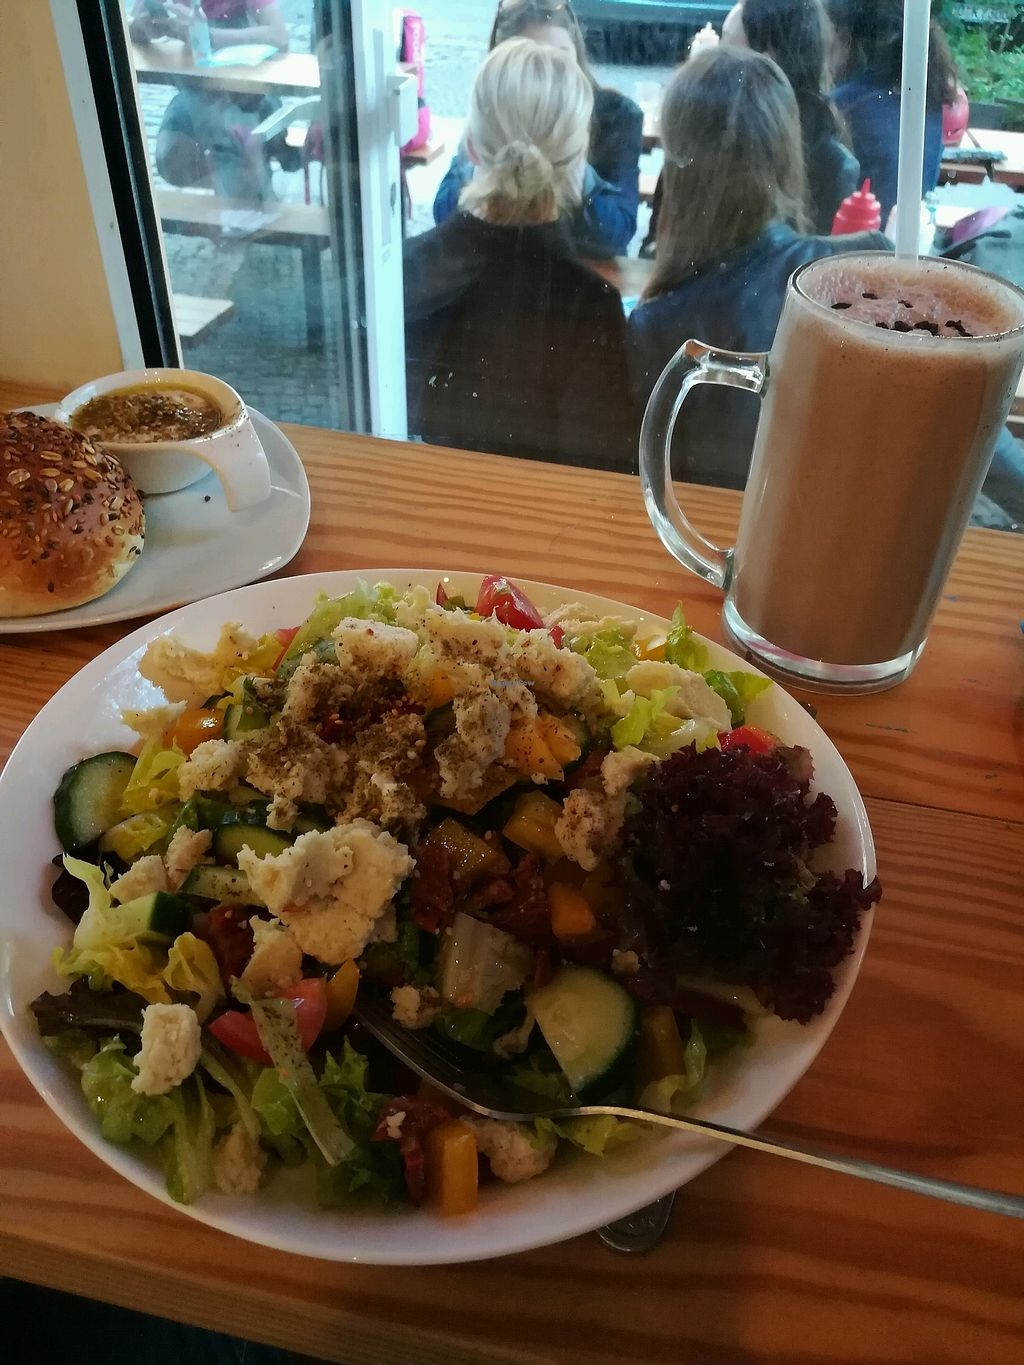 """Photo of Lia's Kitchen  by <a href=""""/members/profile/Tobias94"""">Tobias94</a> <br/>Greek salad (skipped the olives) with chocolate soy milk shake <br/> March 13, 2018  - <a href='/contact/abuse/image/82729/369975'>Report</a>"""